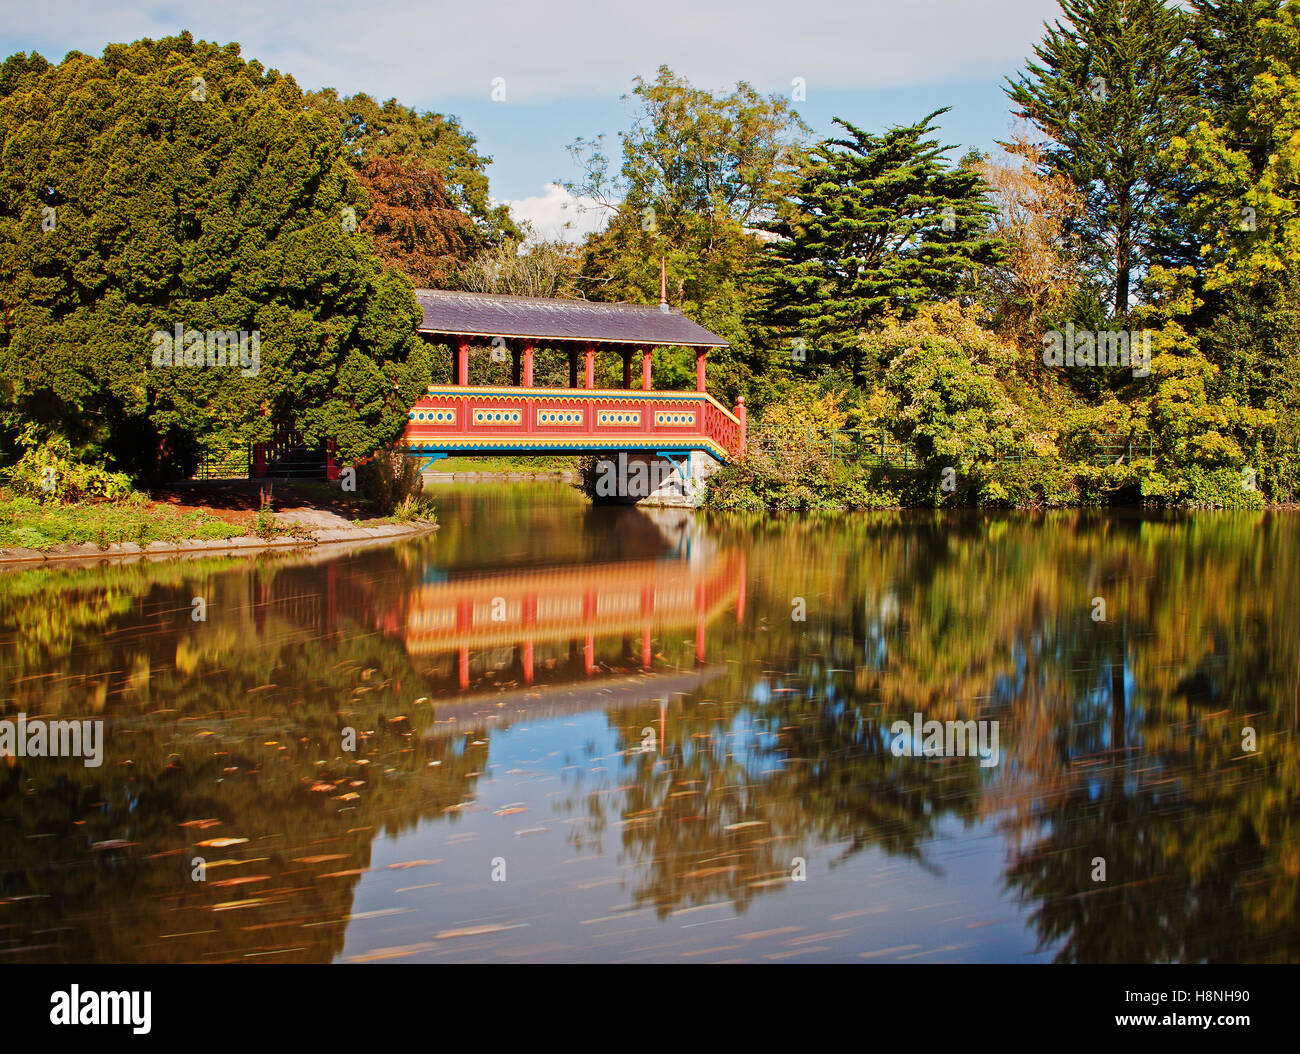 Swiss Bridge and lakeside reflections - Stock Image